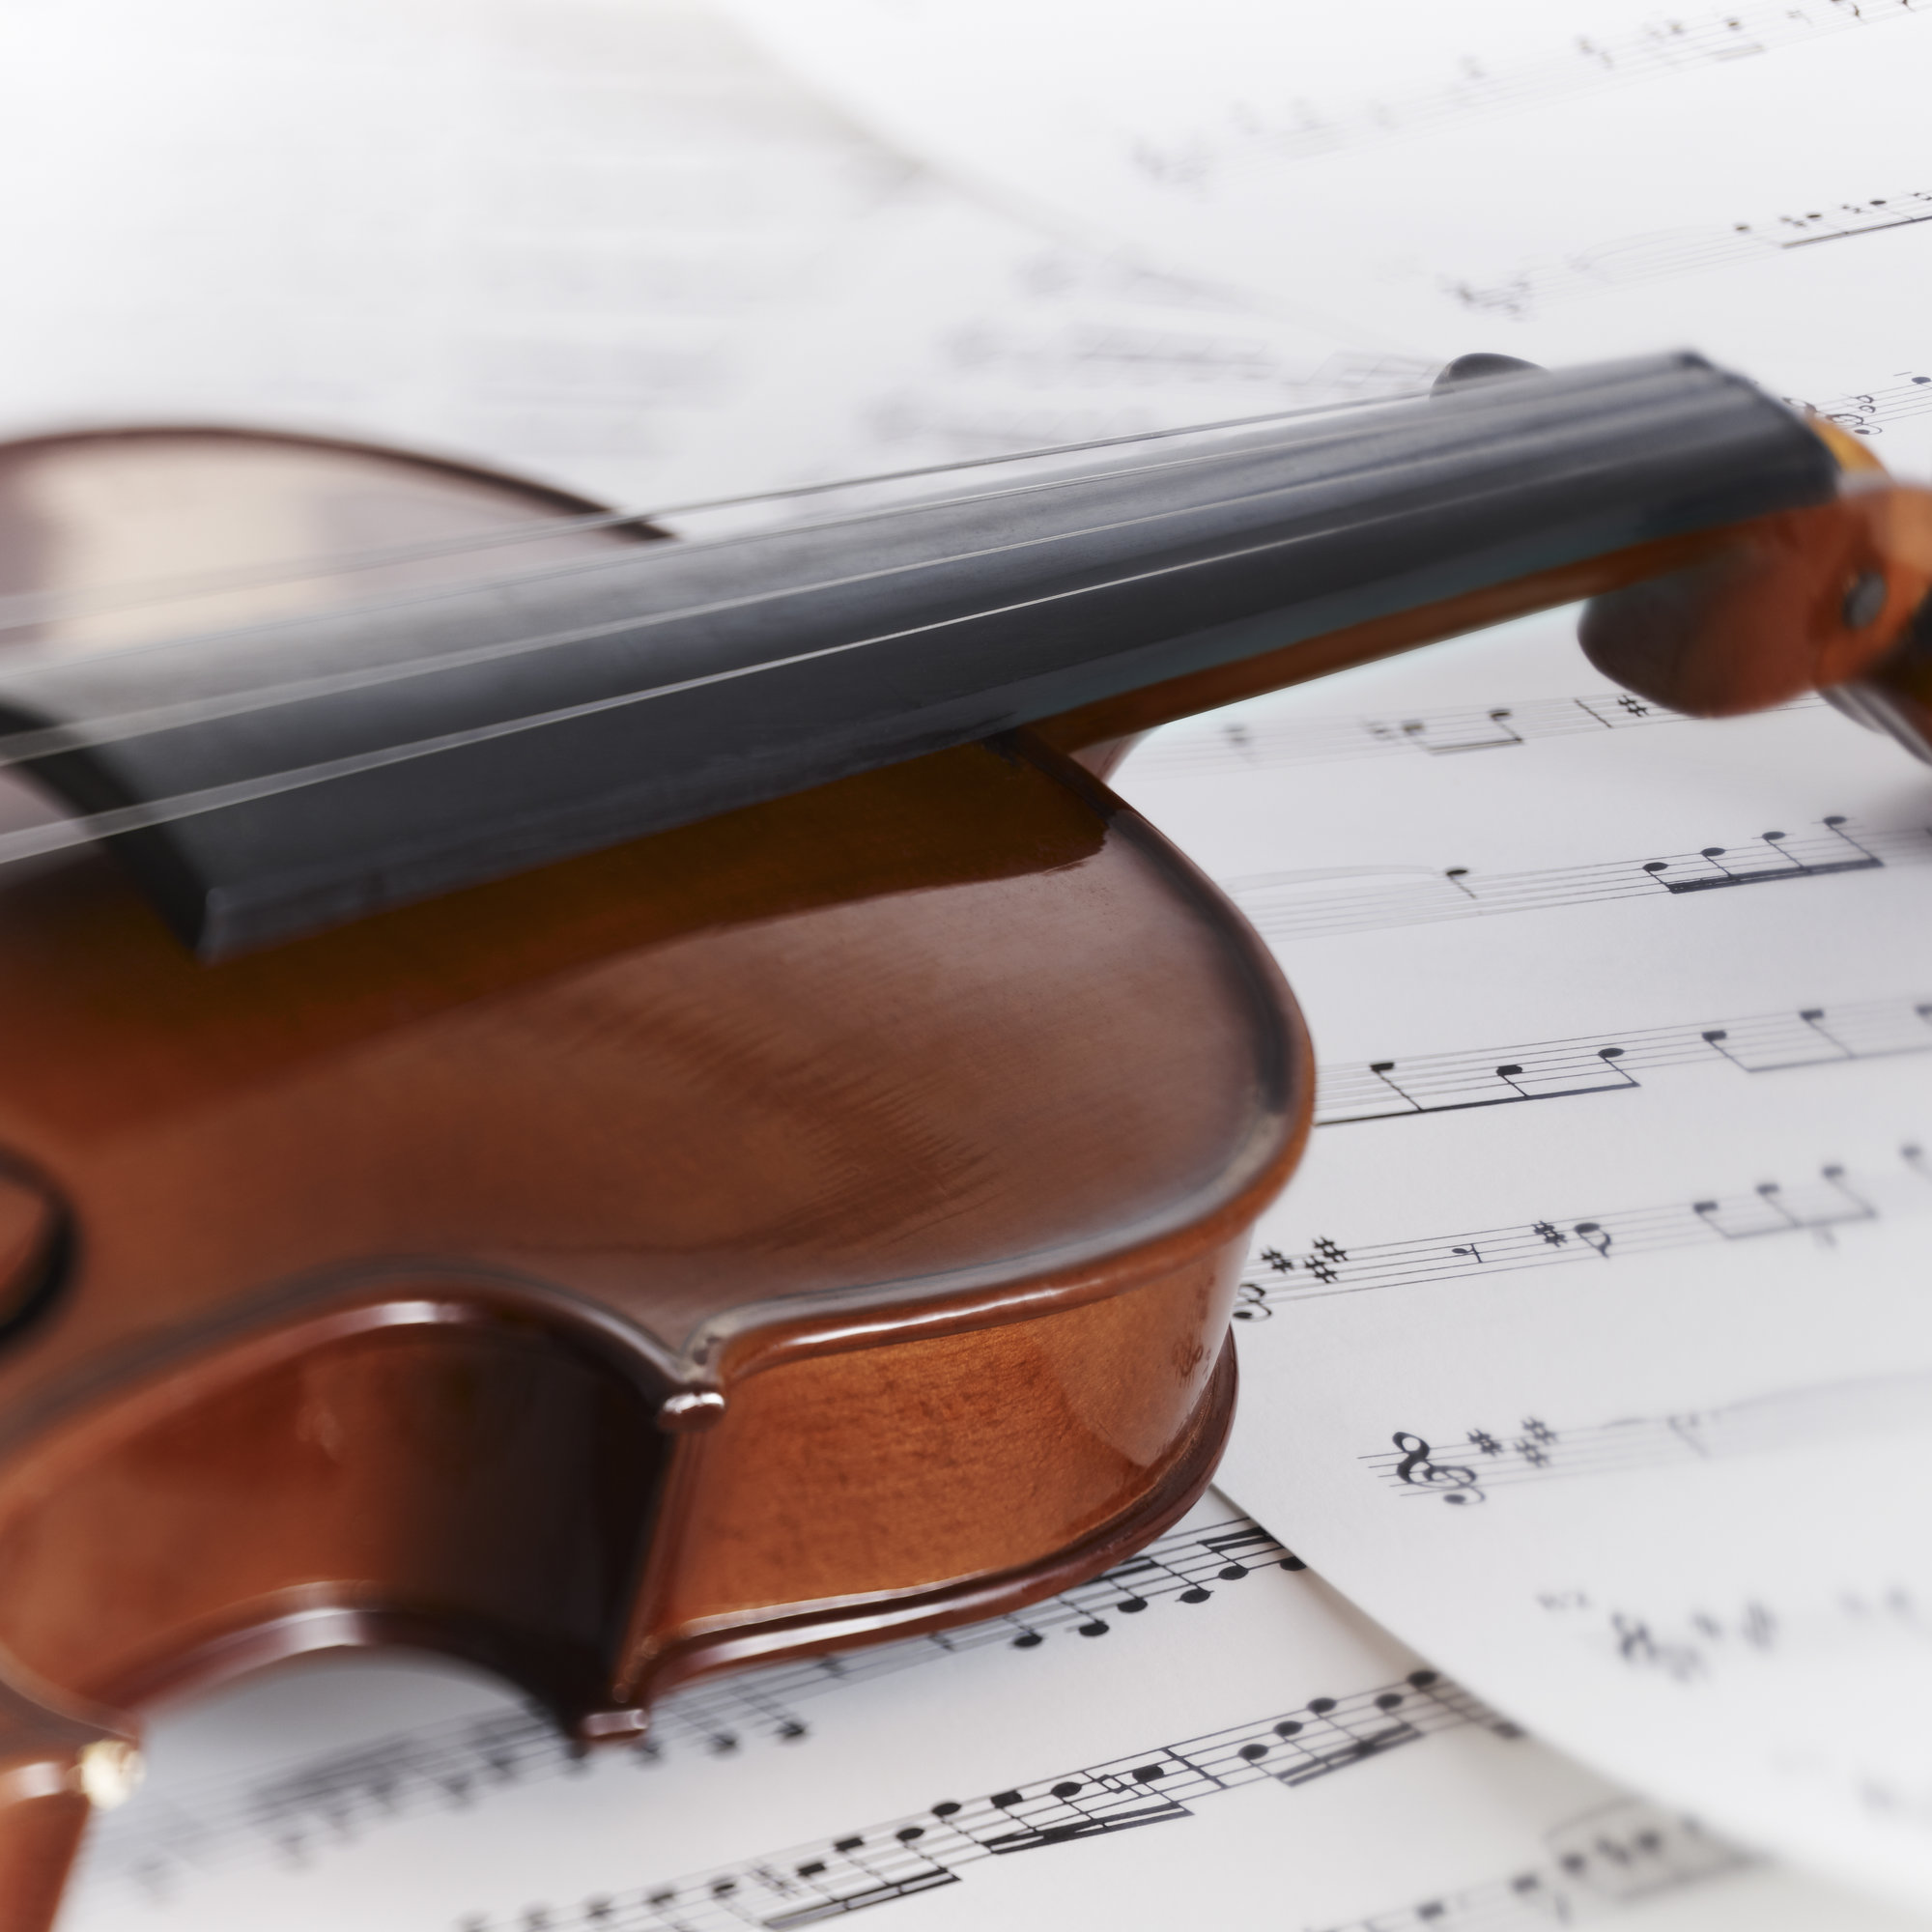 Here's What Playing an Instrument Can Do for Your Brain